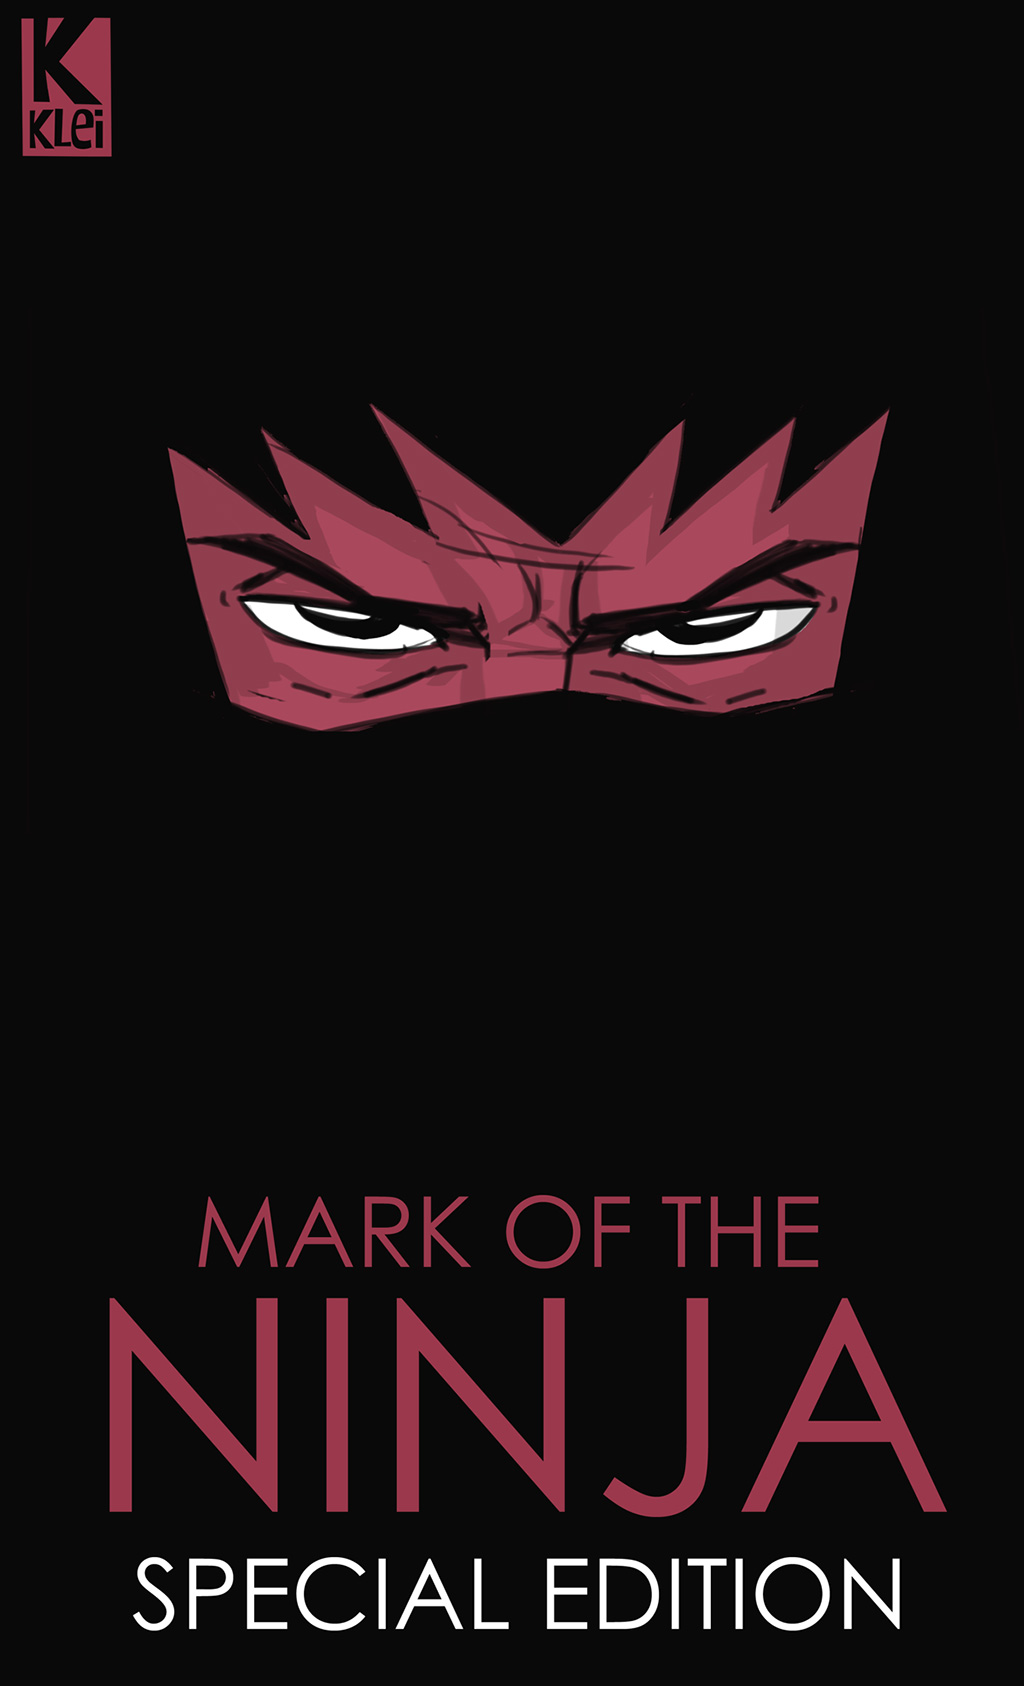 Mark-of-the-ninja-special-edition-dlc-poster_1024